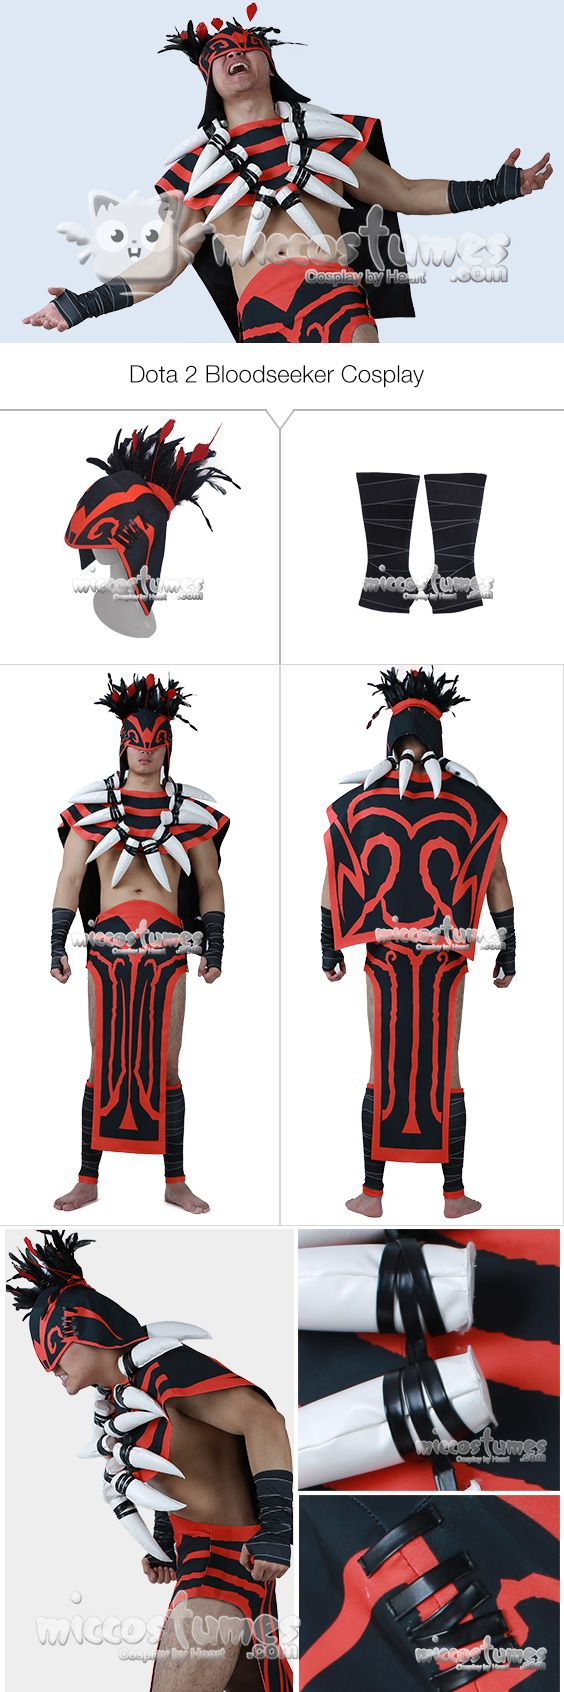 More about Dota 2 Bloodseeker Cosplay Costume with Shoe Covers made by Miccostume  #cosplay #miccostumes #Dota2 #Bloodseeker #CosplayCostume  #Dota2cosplay #BloodseekerCosplay